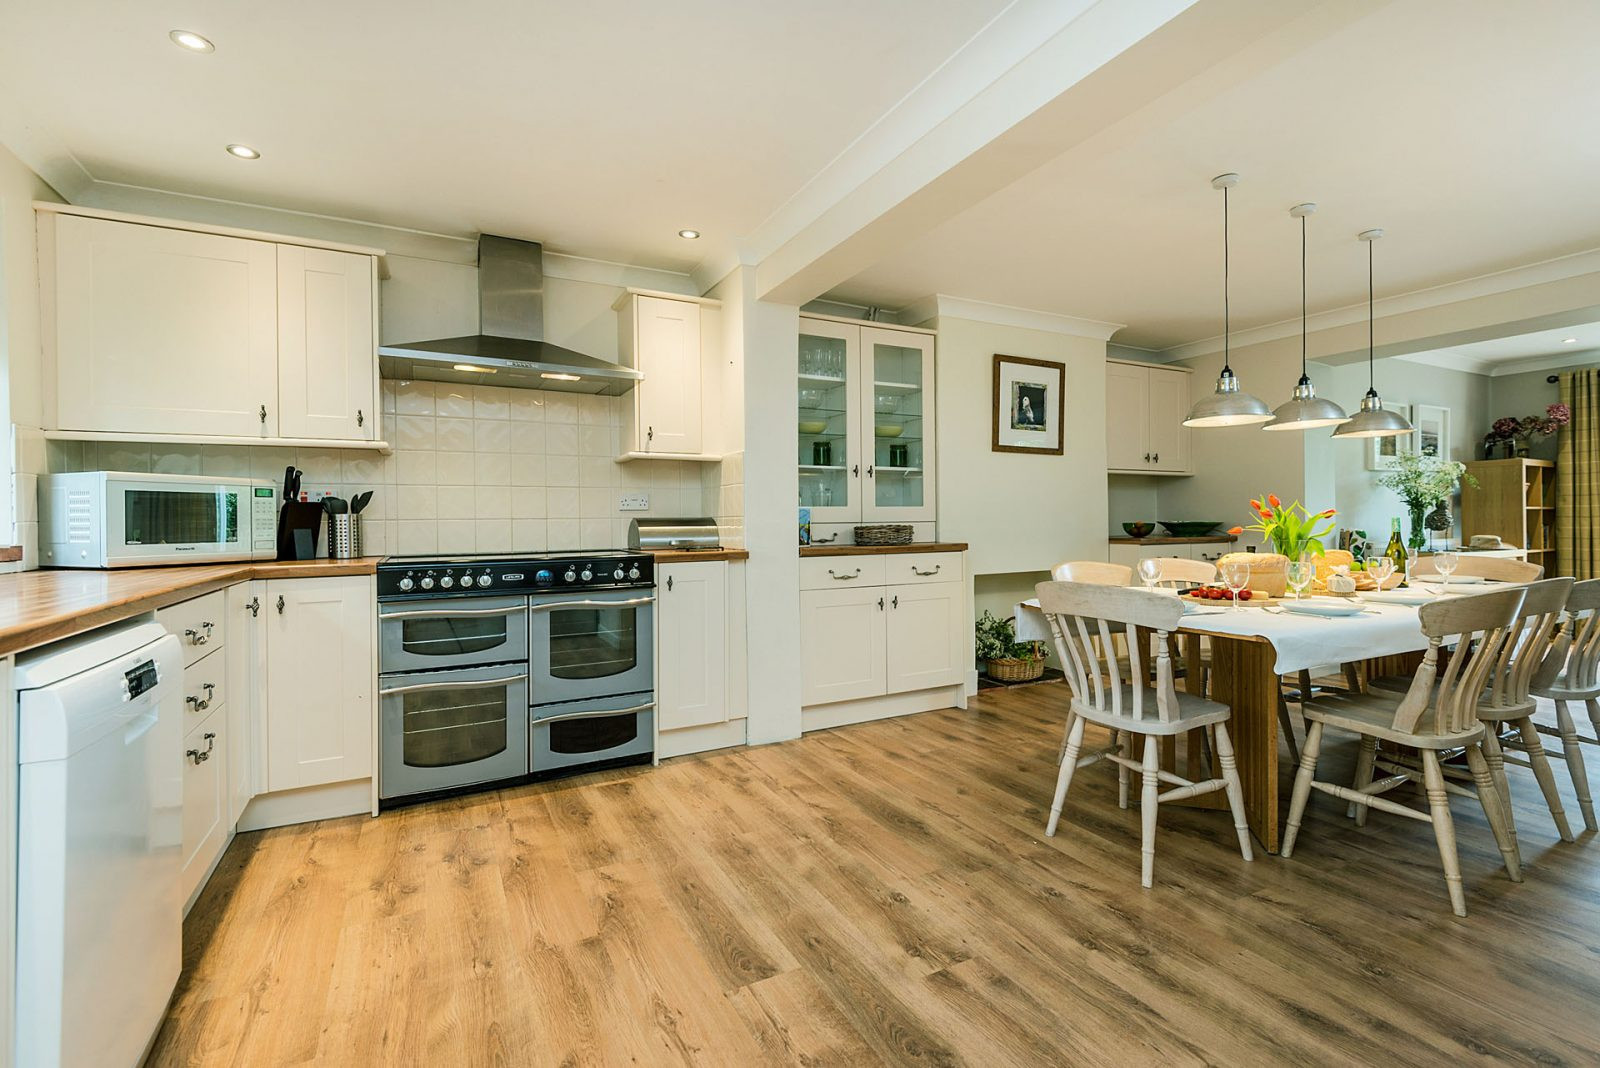 19 Ideal Pet Friendly Hardwood Floors 2021 free download pet friendly hardwood floors of end cottage pet friendly familyholiday cottage in norfolk sleeps 8 with regard to end cottage luxury pet friendly holiday cottage kitchen